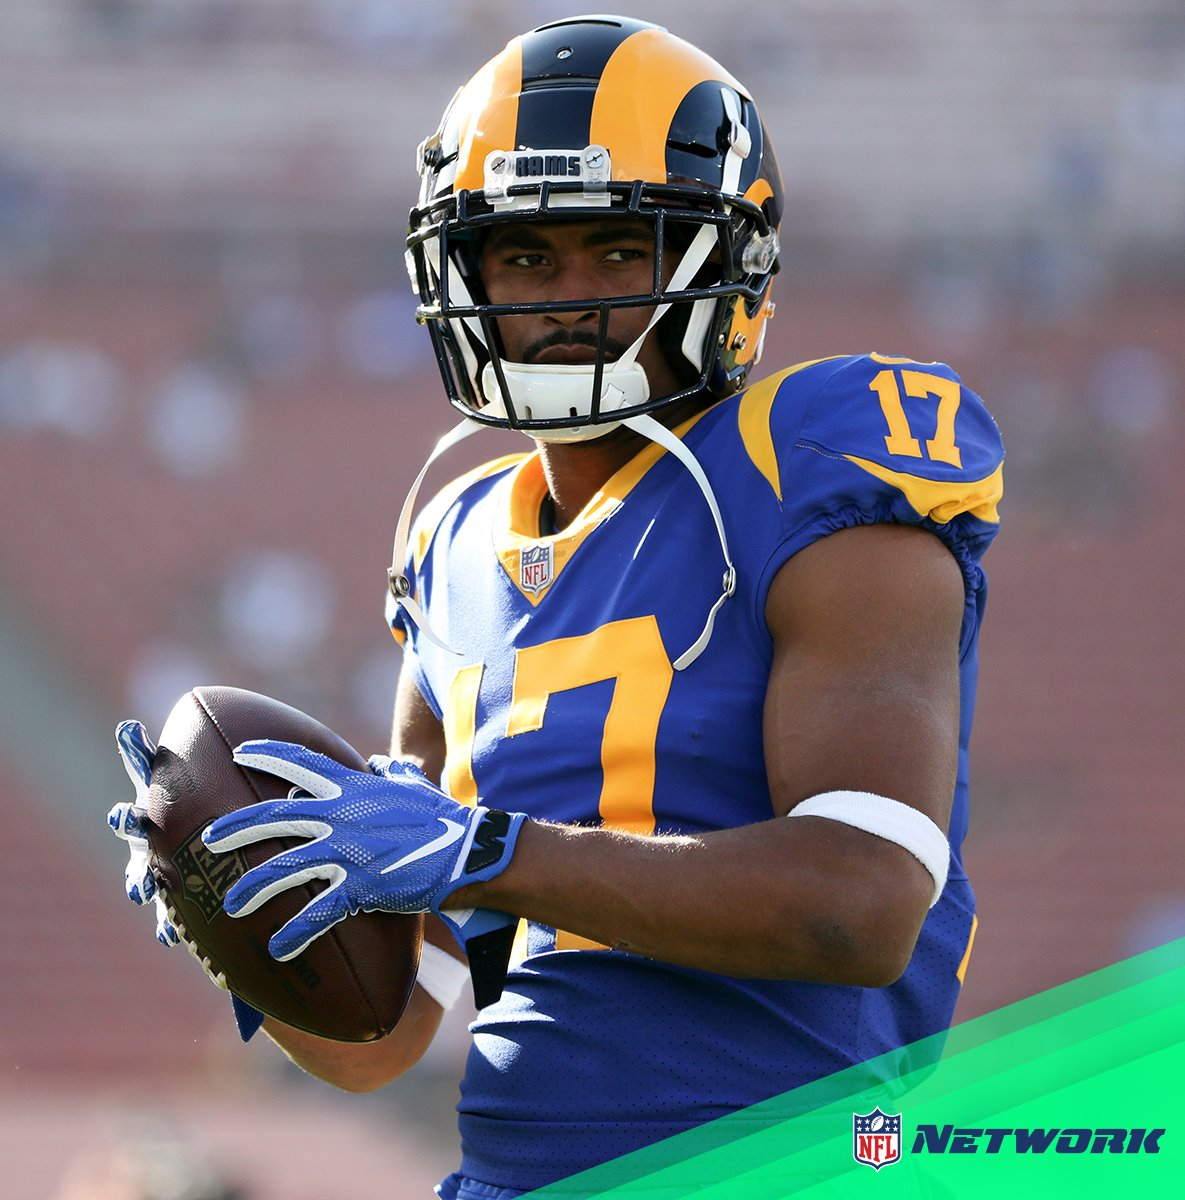 .@robertwoods of the undefeated @RamsNFL joins us NEXT on @NFLTotalAccess! 📺: NFL Network